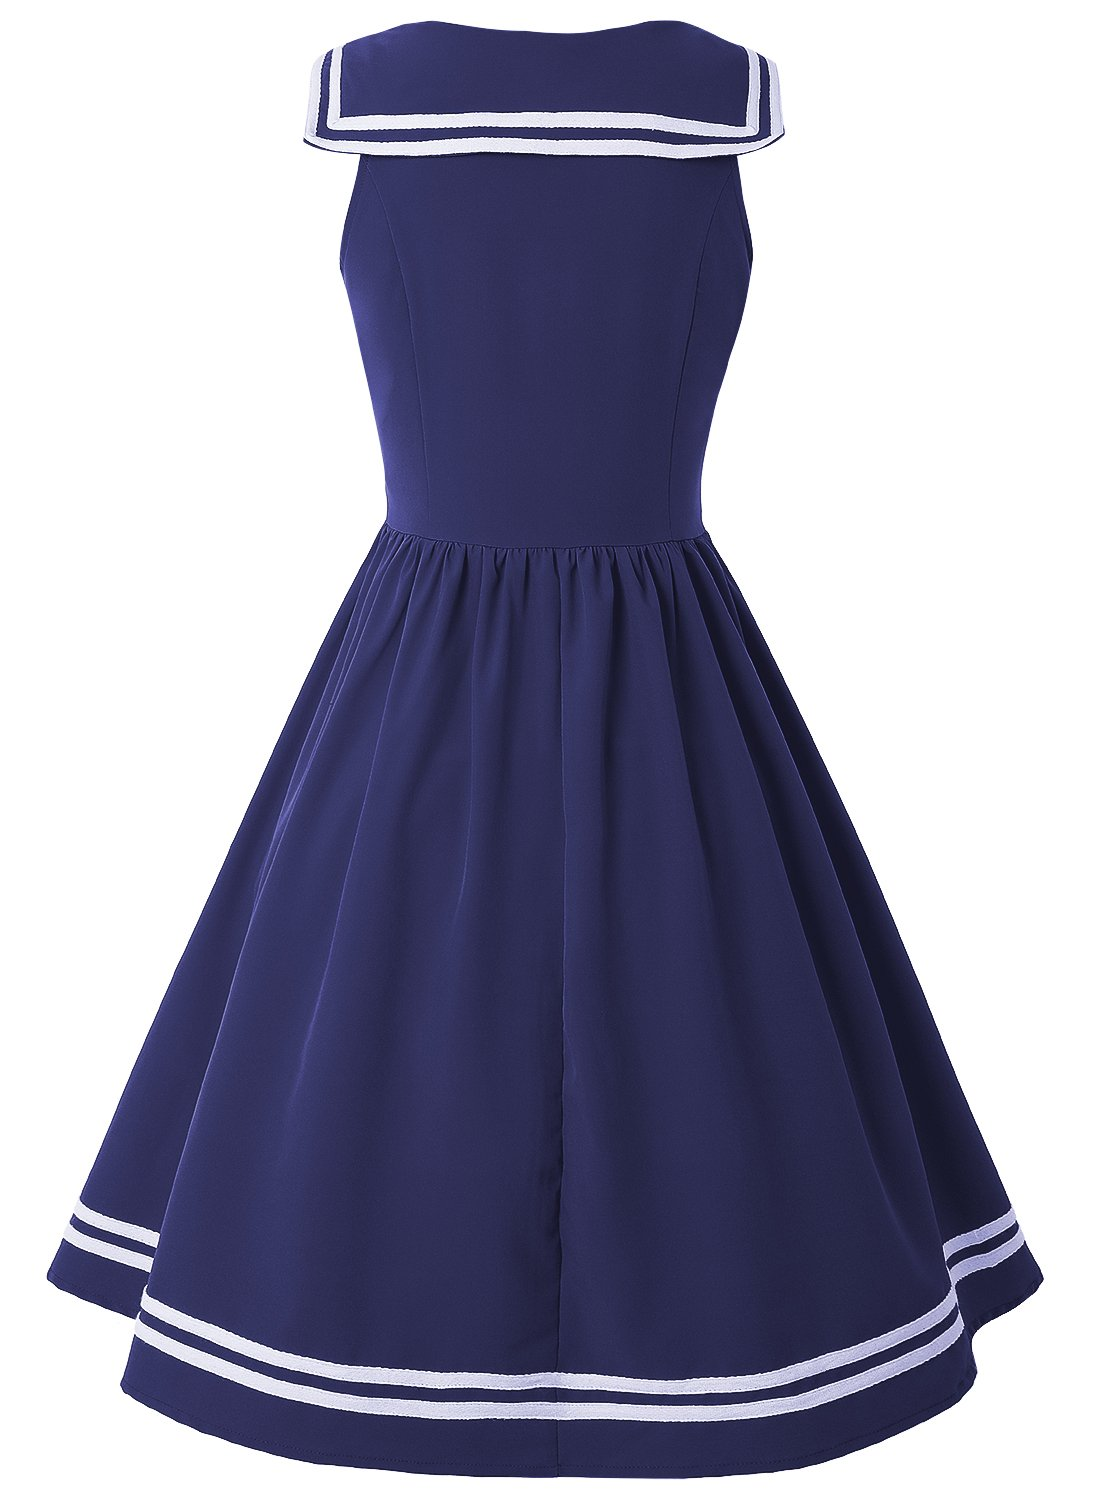 ZAFUL Women Vintage Dress 1950s Nautical Style Summer Sailor Collar Sleeveless Cute Cocktail Party Swing Dresses(Blue,S) by ZAFUL (Image #2)